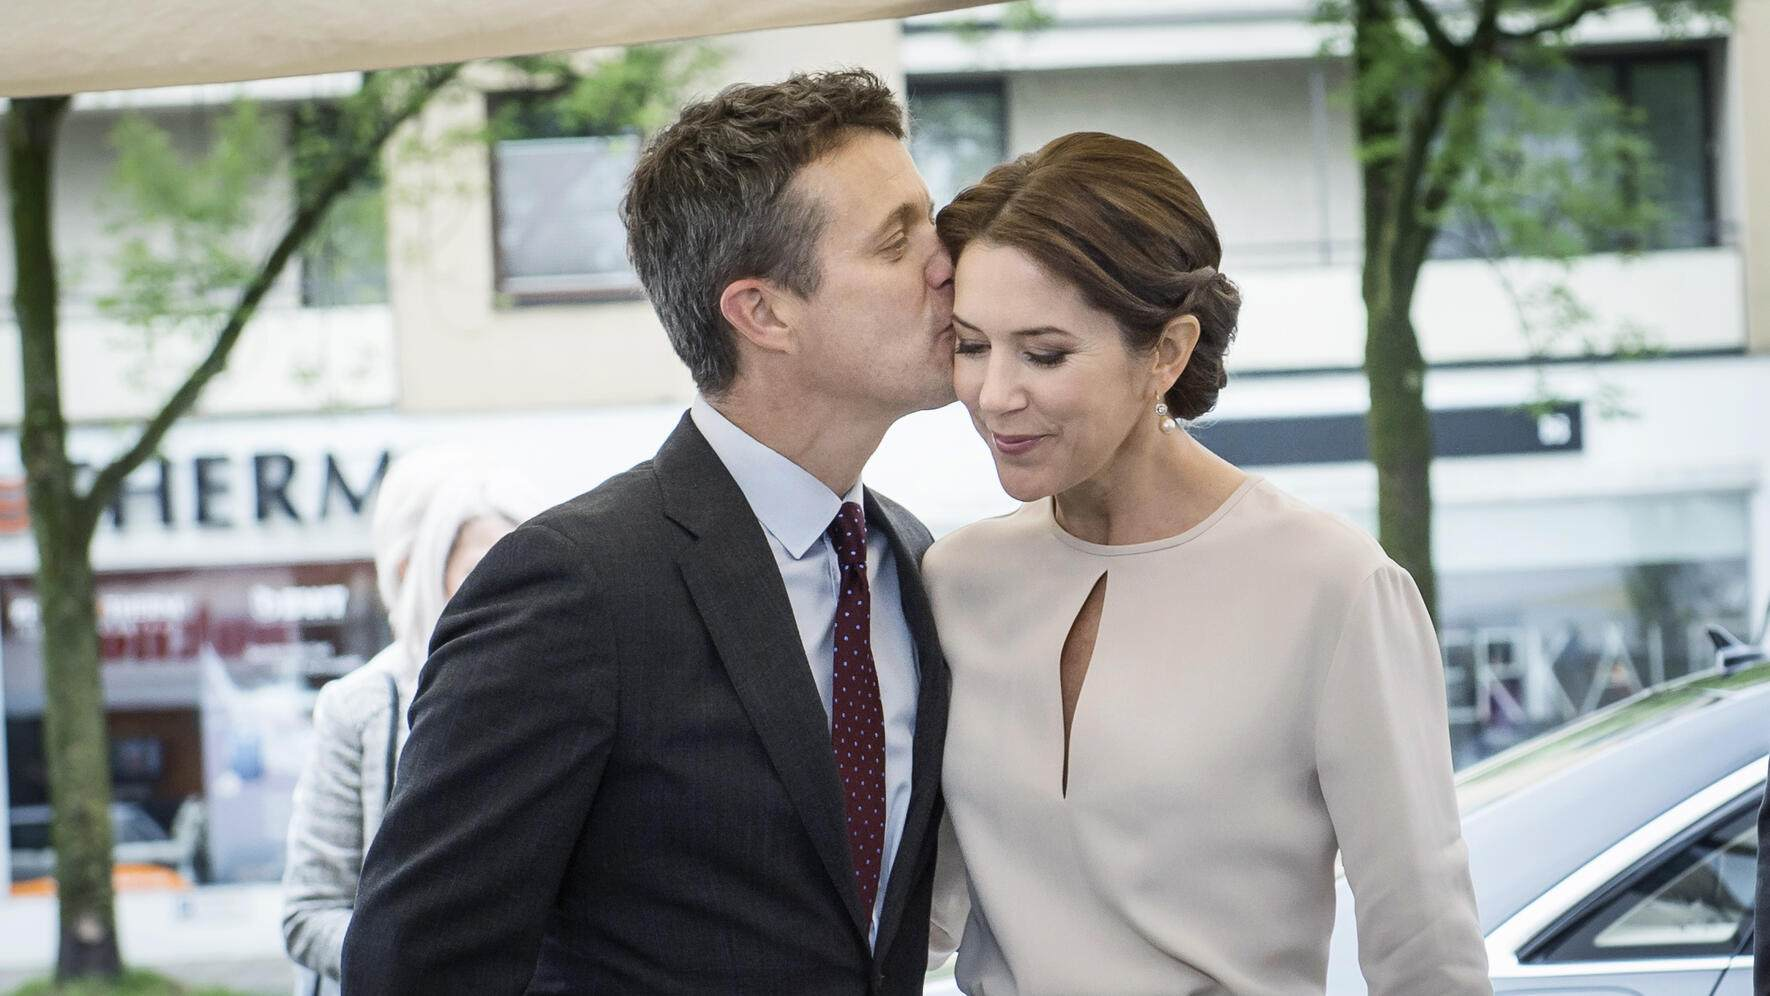 HRH Crown Prince Frederik and HRH Crown Princess Mary are on an offical visit to Germany from the 19th to 21st of May, 2015. HRH Crown Princess Mary visits an event in Munich May 21, 2015, which aims to brand Denmark as a design and gastronomy country. The Danish chef Thorsten Schmidt presents Danish food and gastronomy. The Crown Princess lends a hand in the process.Frederik de Danemark;Mary de Danemark